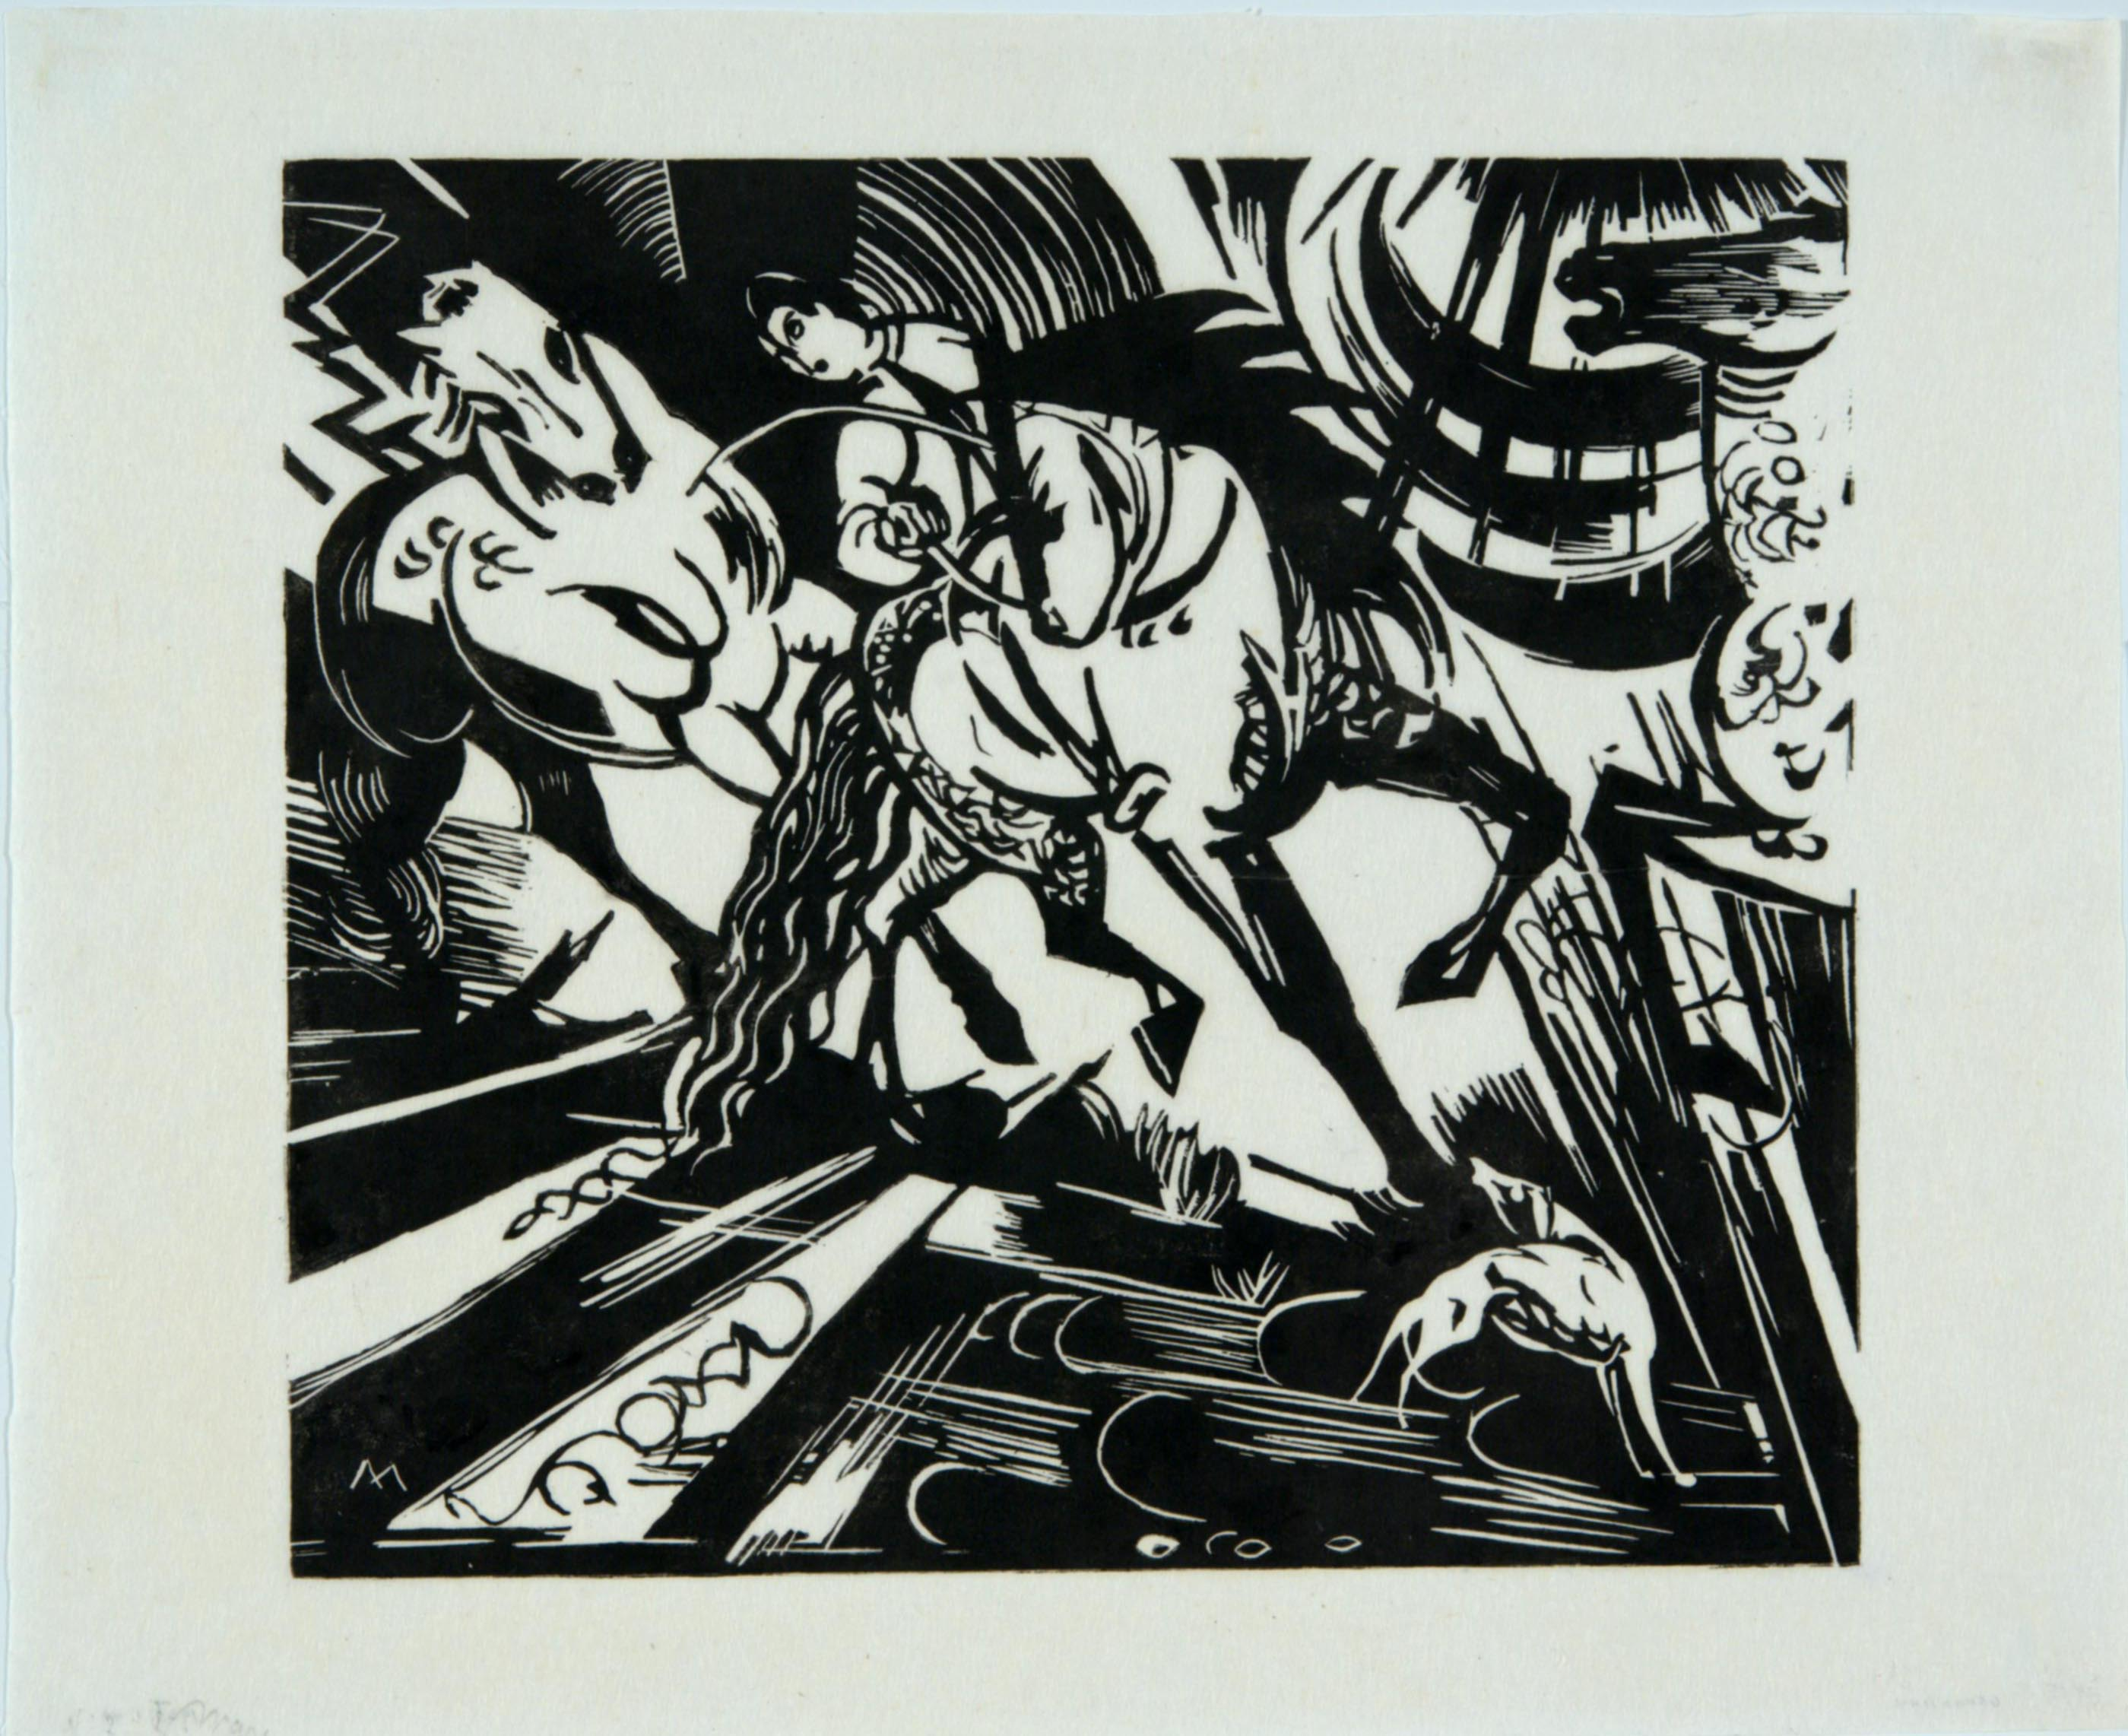 Franz Marc, Riding School after Ridinger, 1913